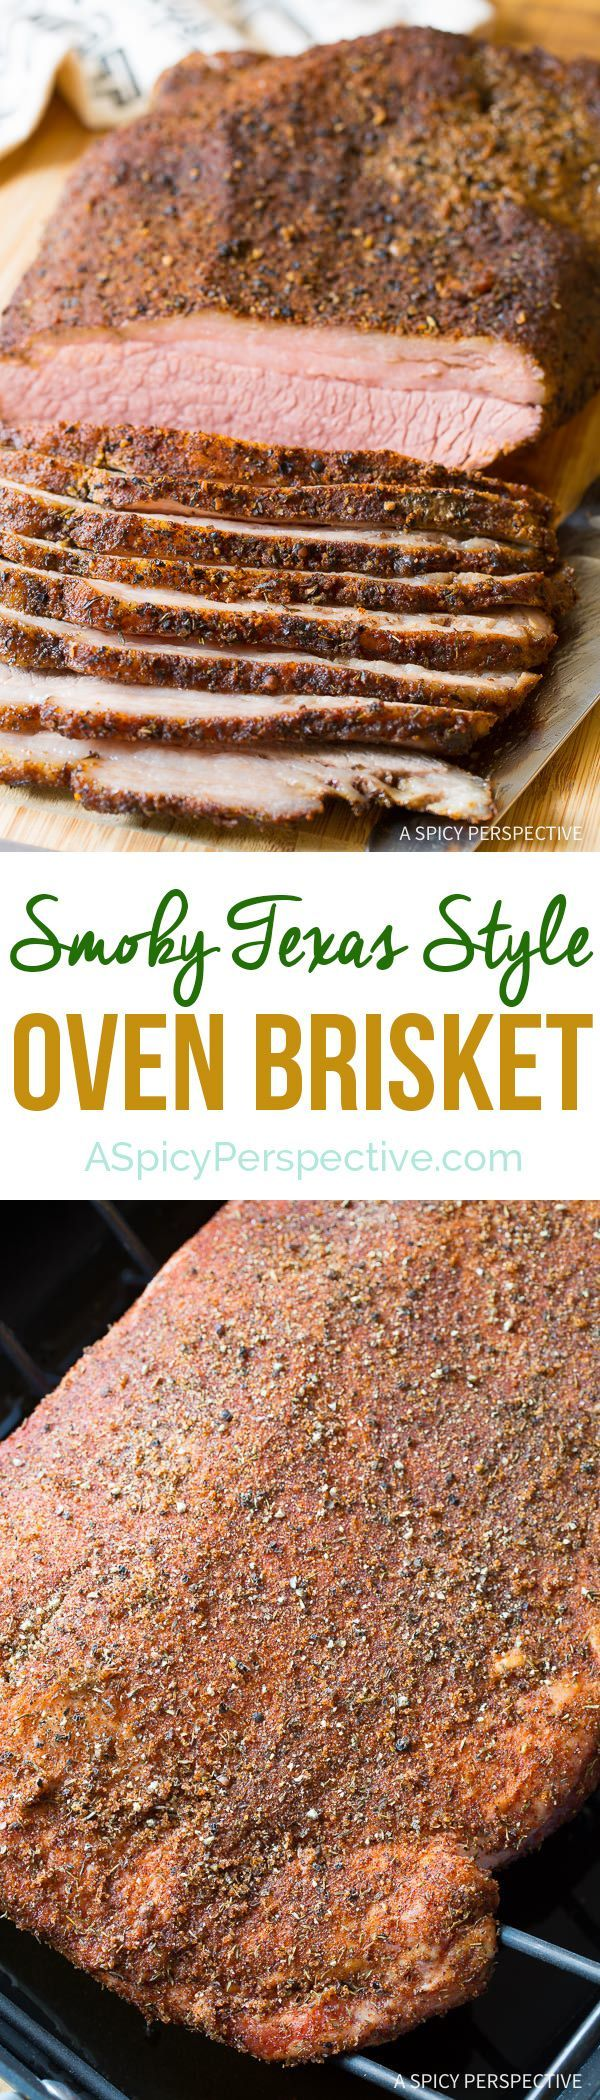 Easy Smoky Texas Style Oven Brisket Recipe on ASpicyPerspective.com - No Smoker Required!